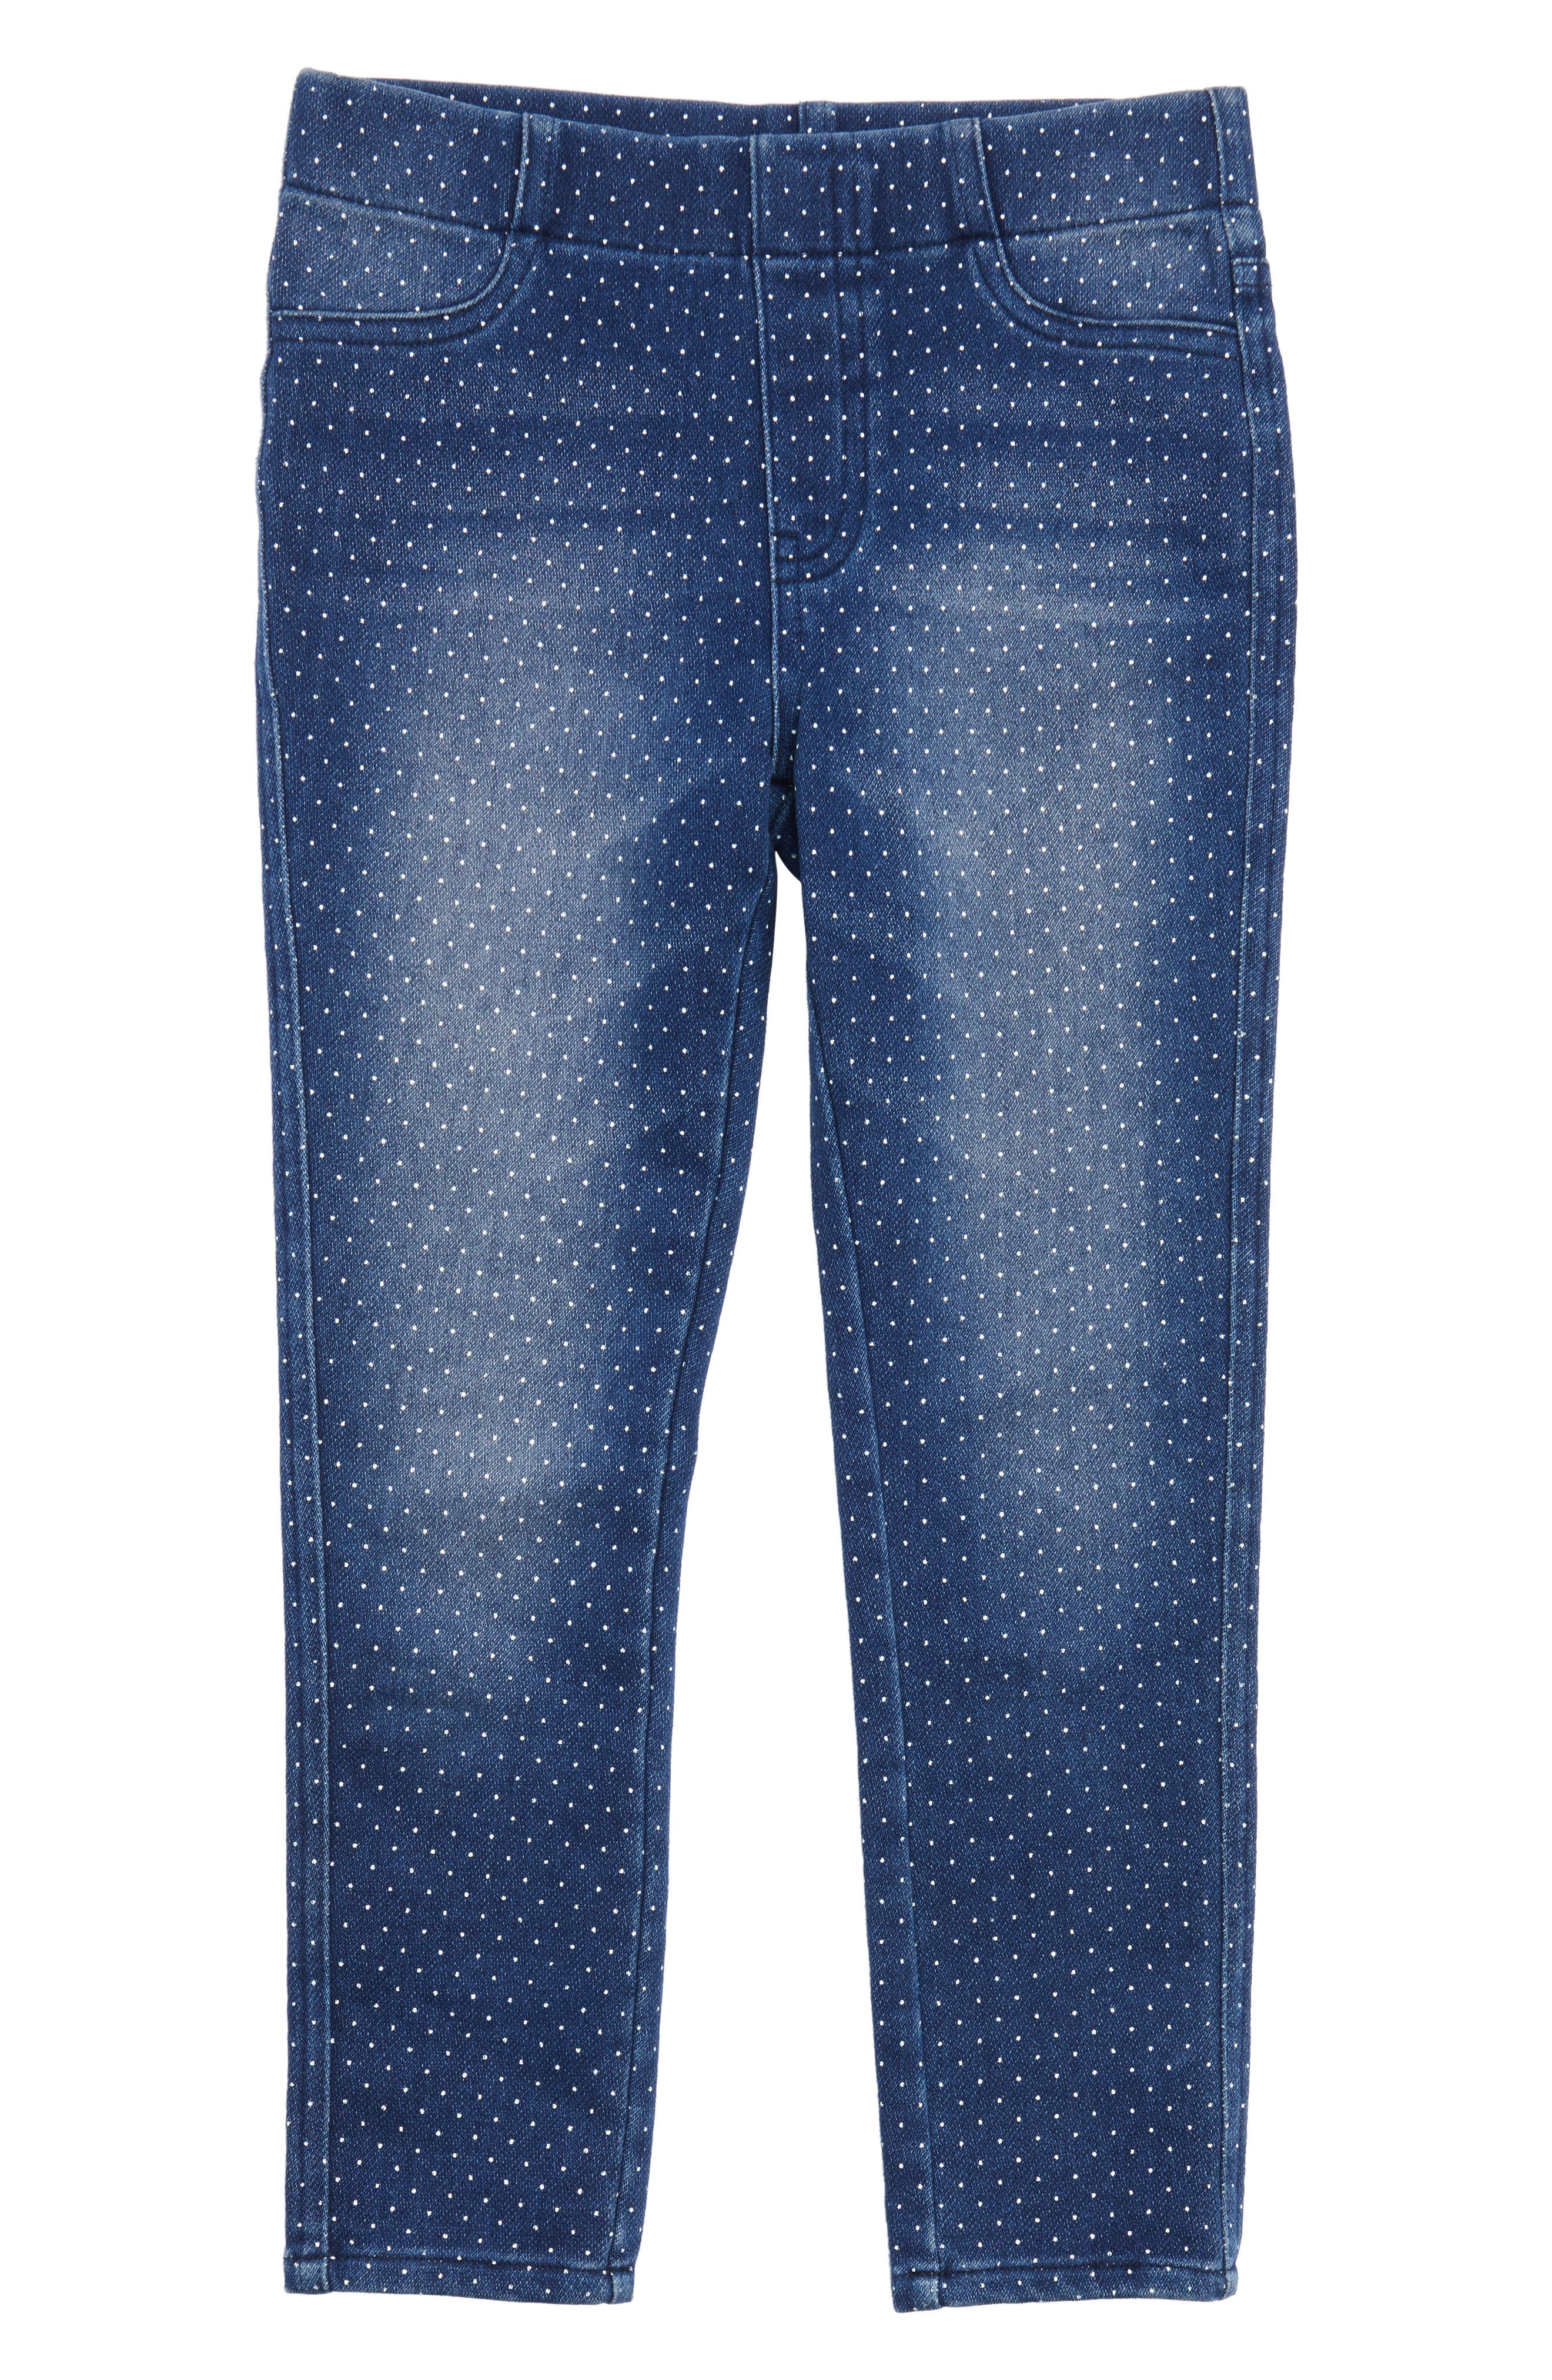 Tucker + Tate Sadie Denim Jeggings (Toddler Girls, Little Girls & Big Girls)